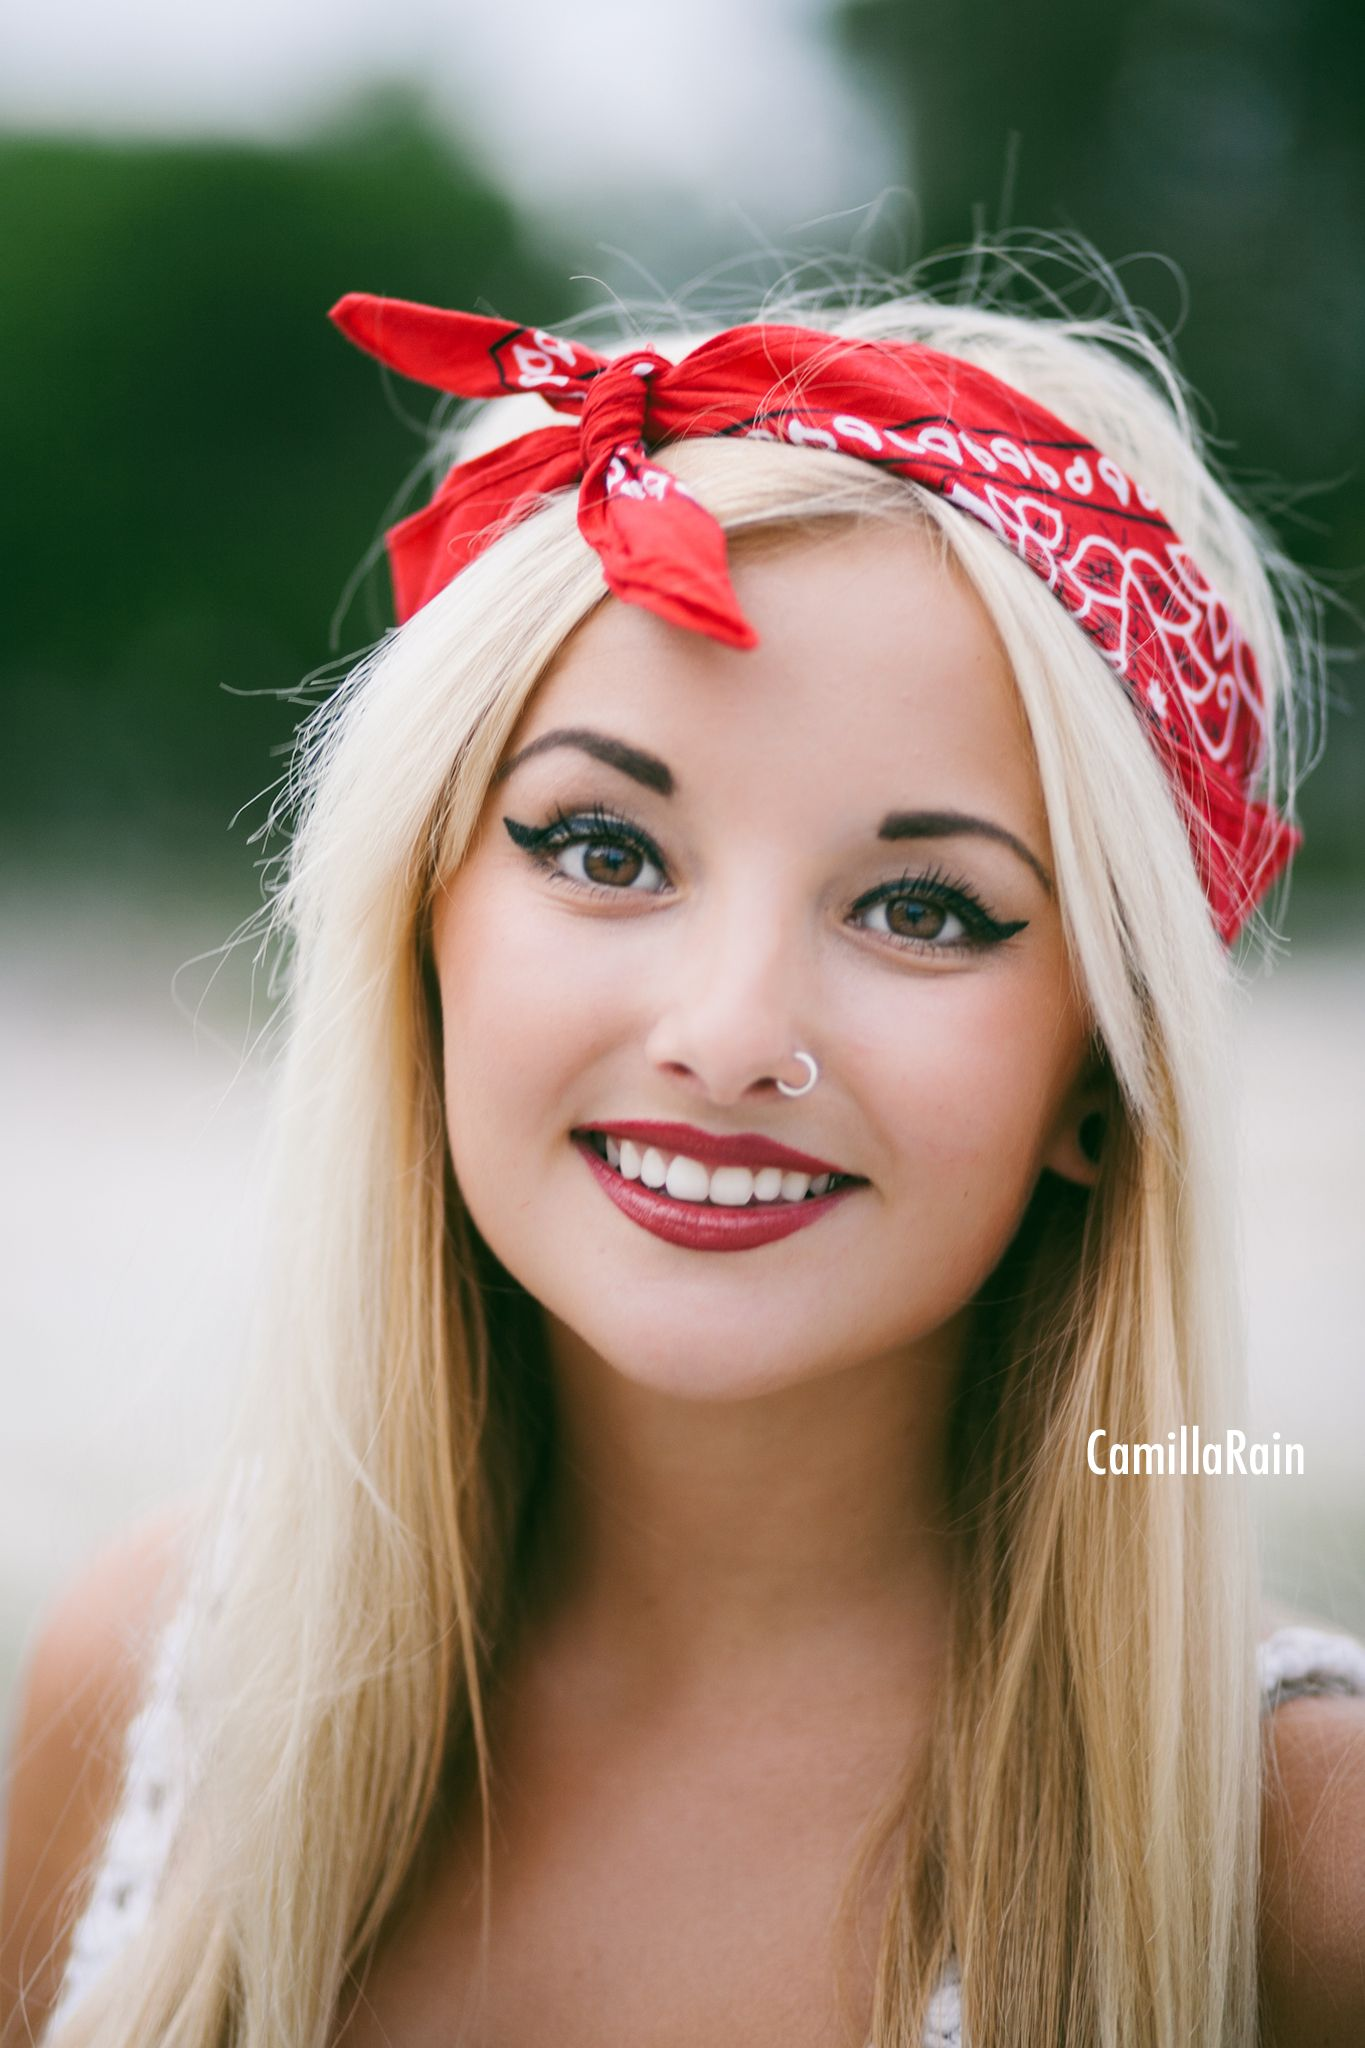 American, red bandana, red lips, 4th of July photo shoot